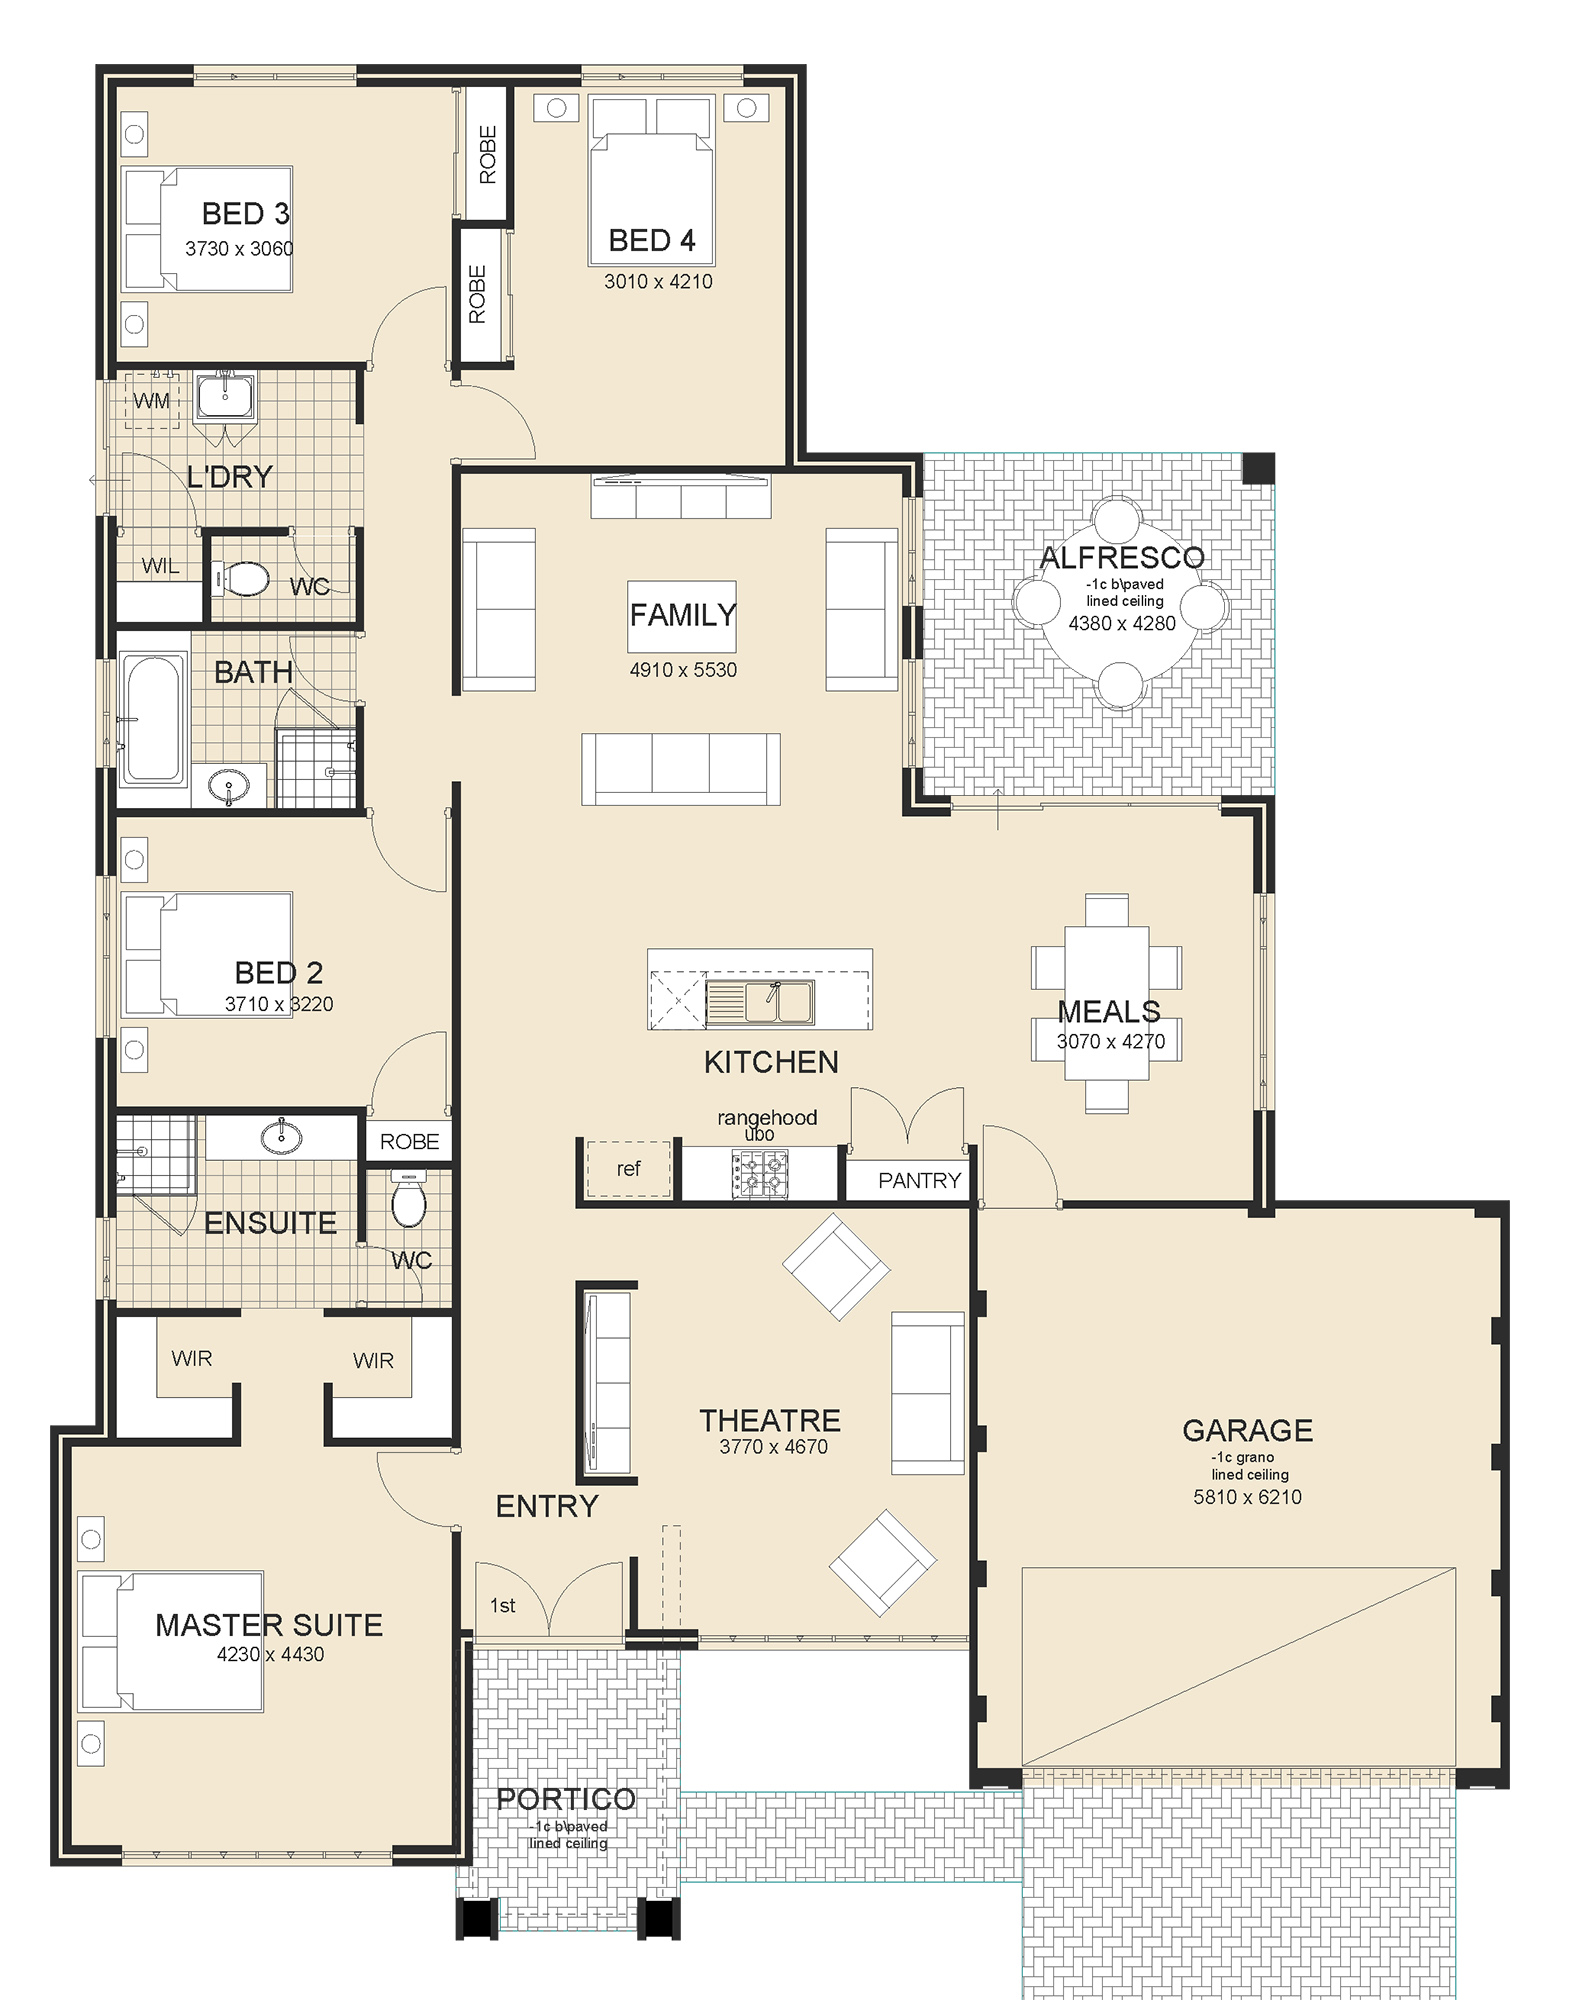 Maddison house plan design perth